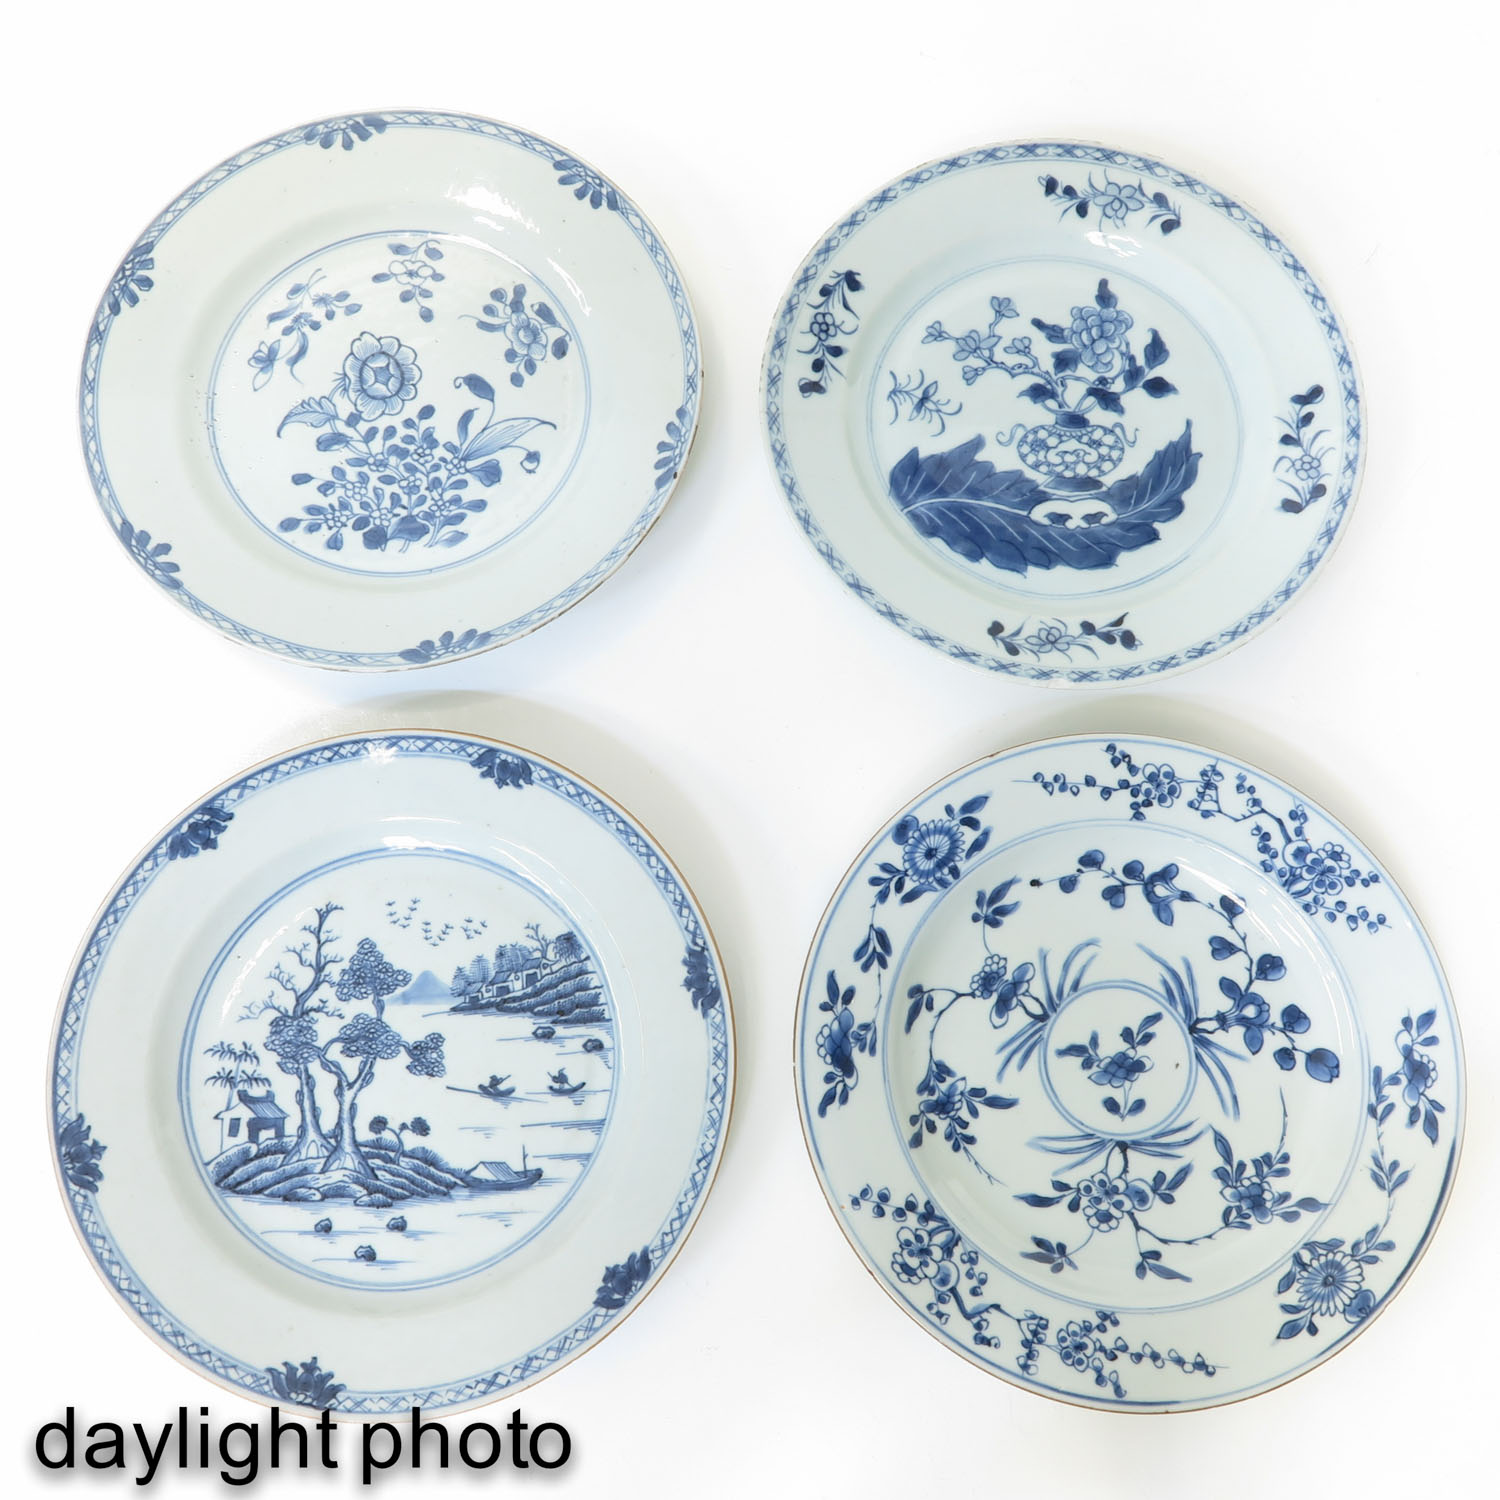 A Collection of 4 Blue and White Plates - Image 7 of 10